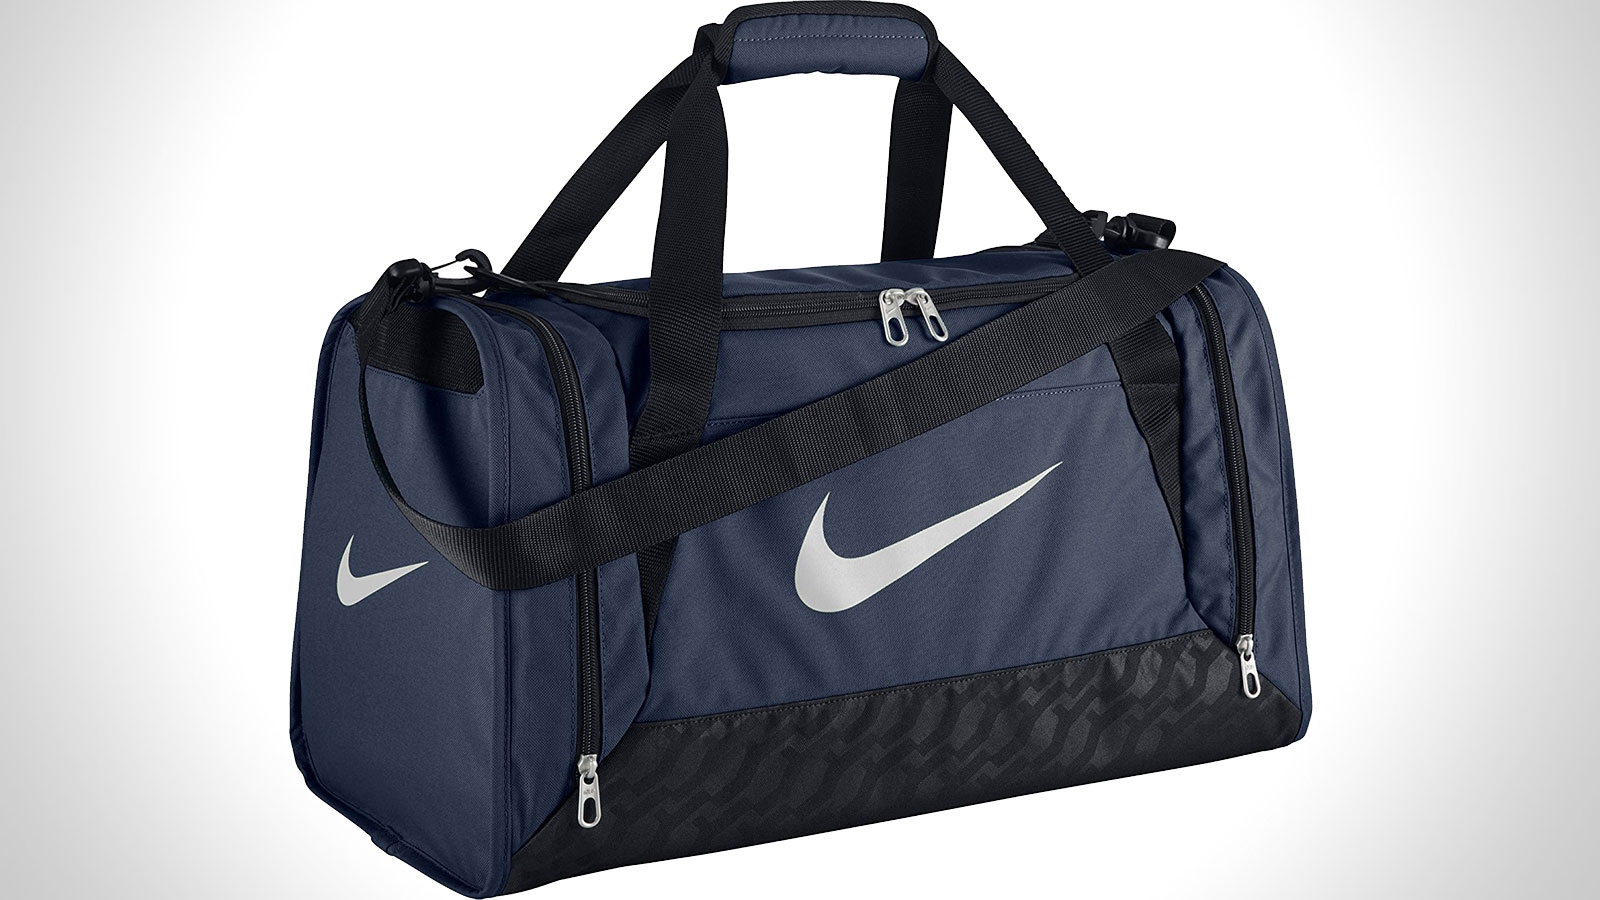 Nike Brasilia 6 Gym Duffel Bag | best mens gym duffle bag